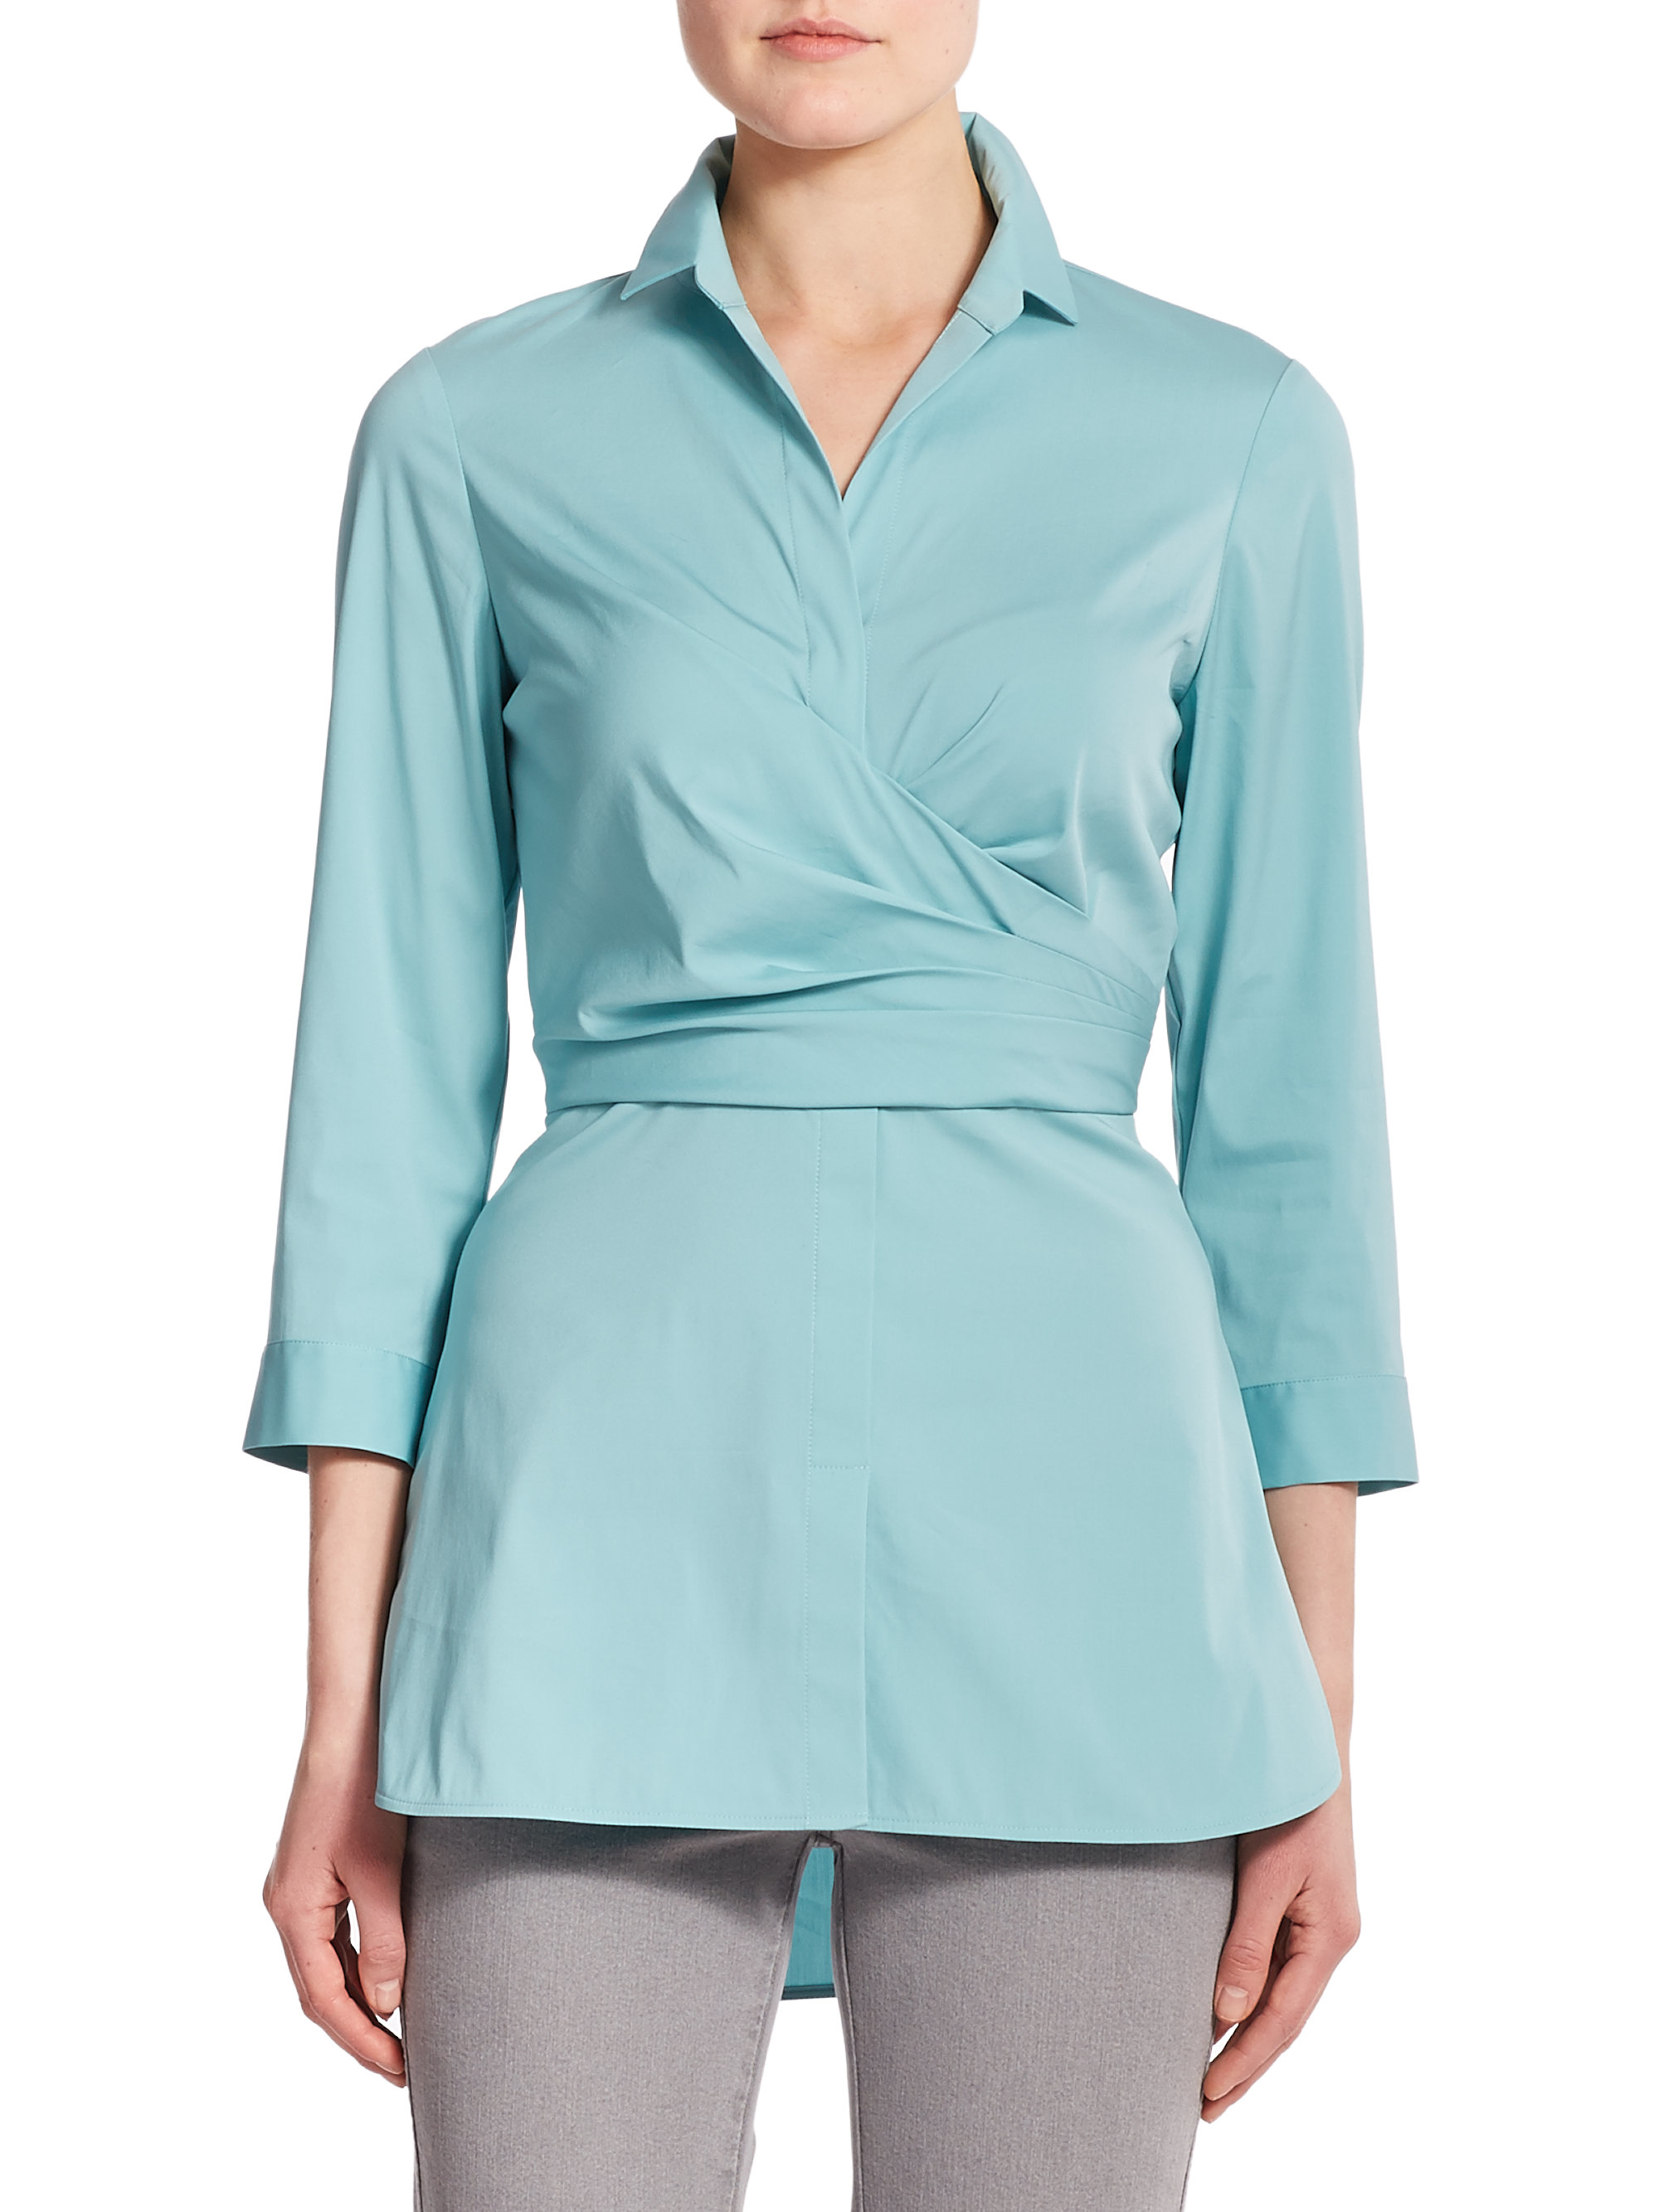 148 Best Images About Craft Ideas For Girls On Pinterest: Lafayette 148 New York Ginger Faux-wrap Blouse In Blue